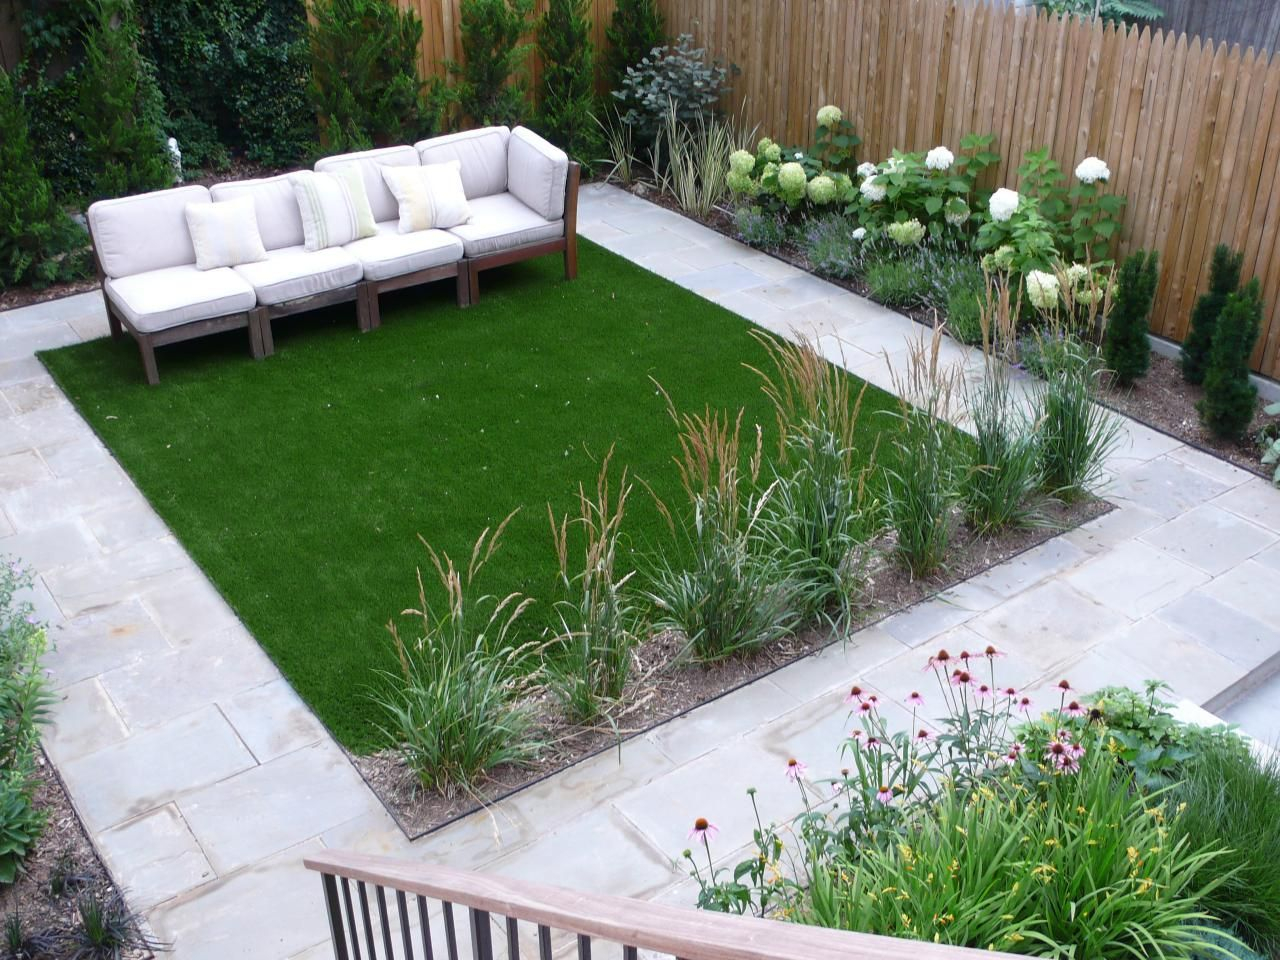 12 Outdoor Flooring Ideas Outdoors Small Backyard Landscaping throughout Landscaping Plans Backyard